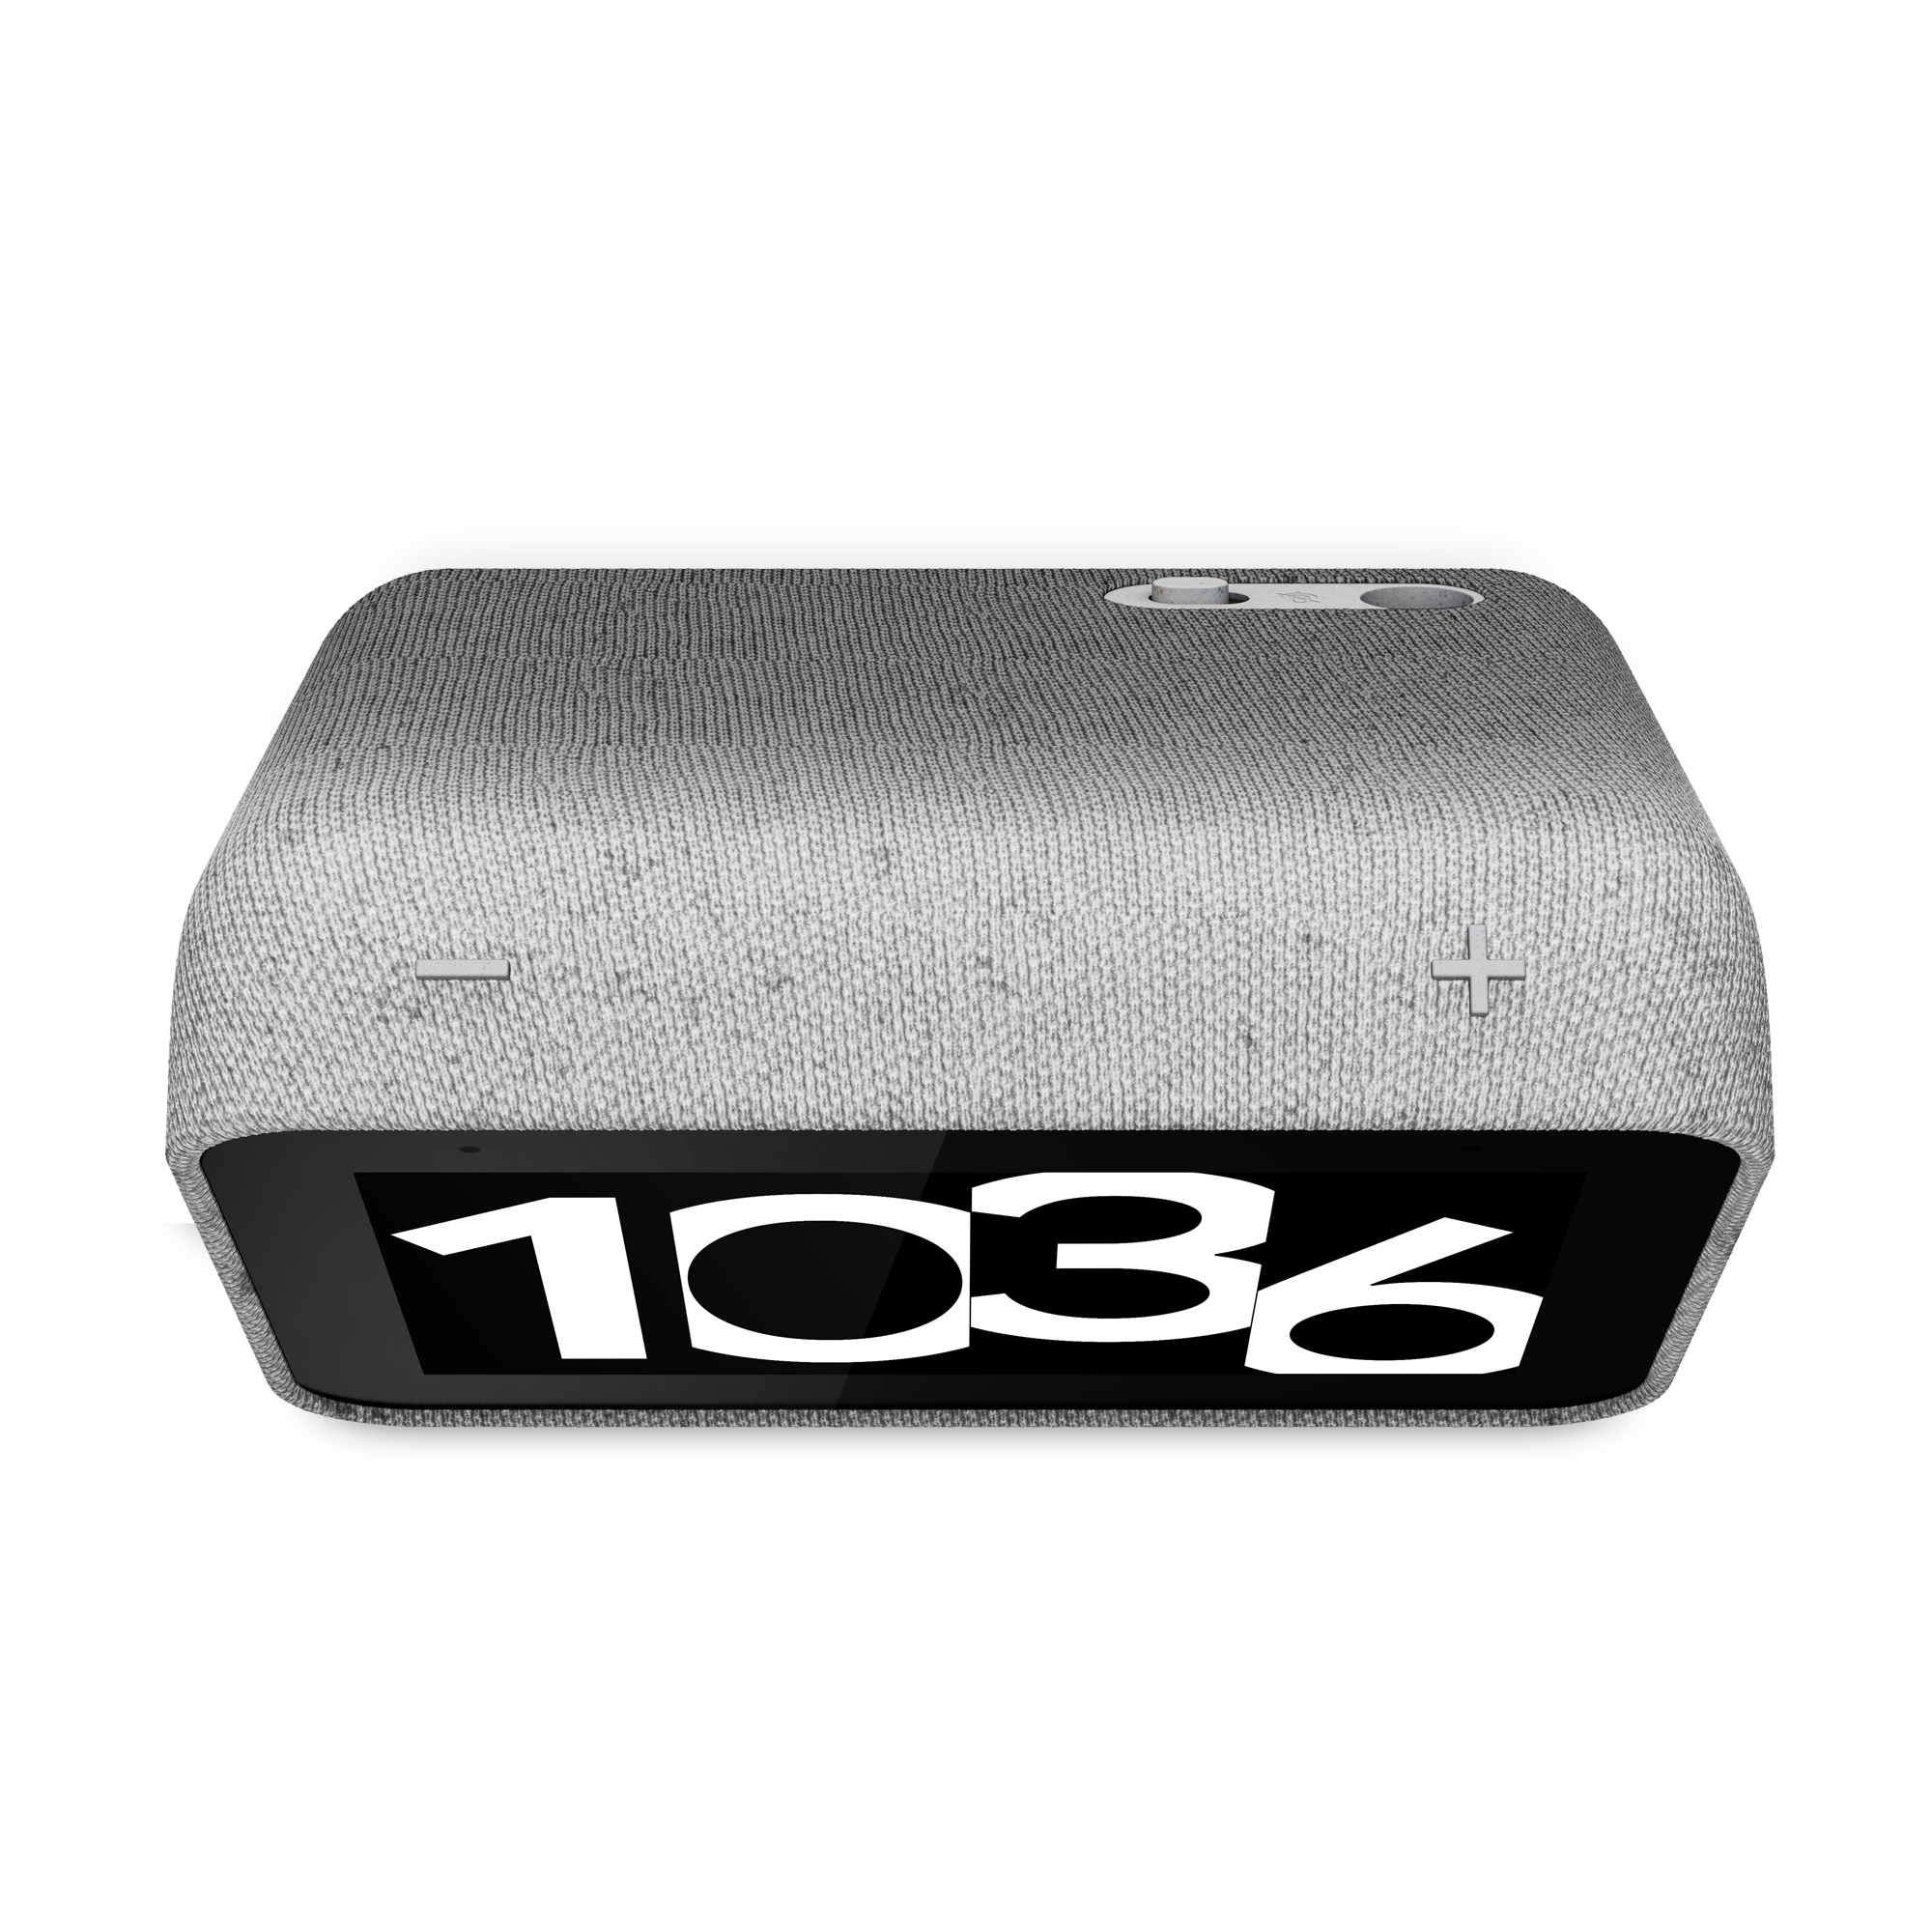 The Lenovo Smart Clock 2 seen from above on a white background. The screen displays the time 10:36.